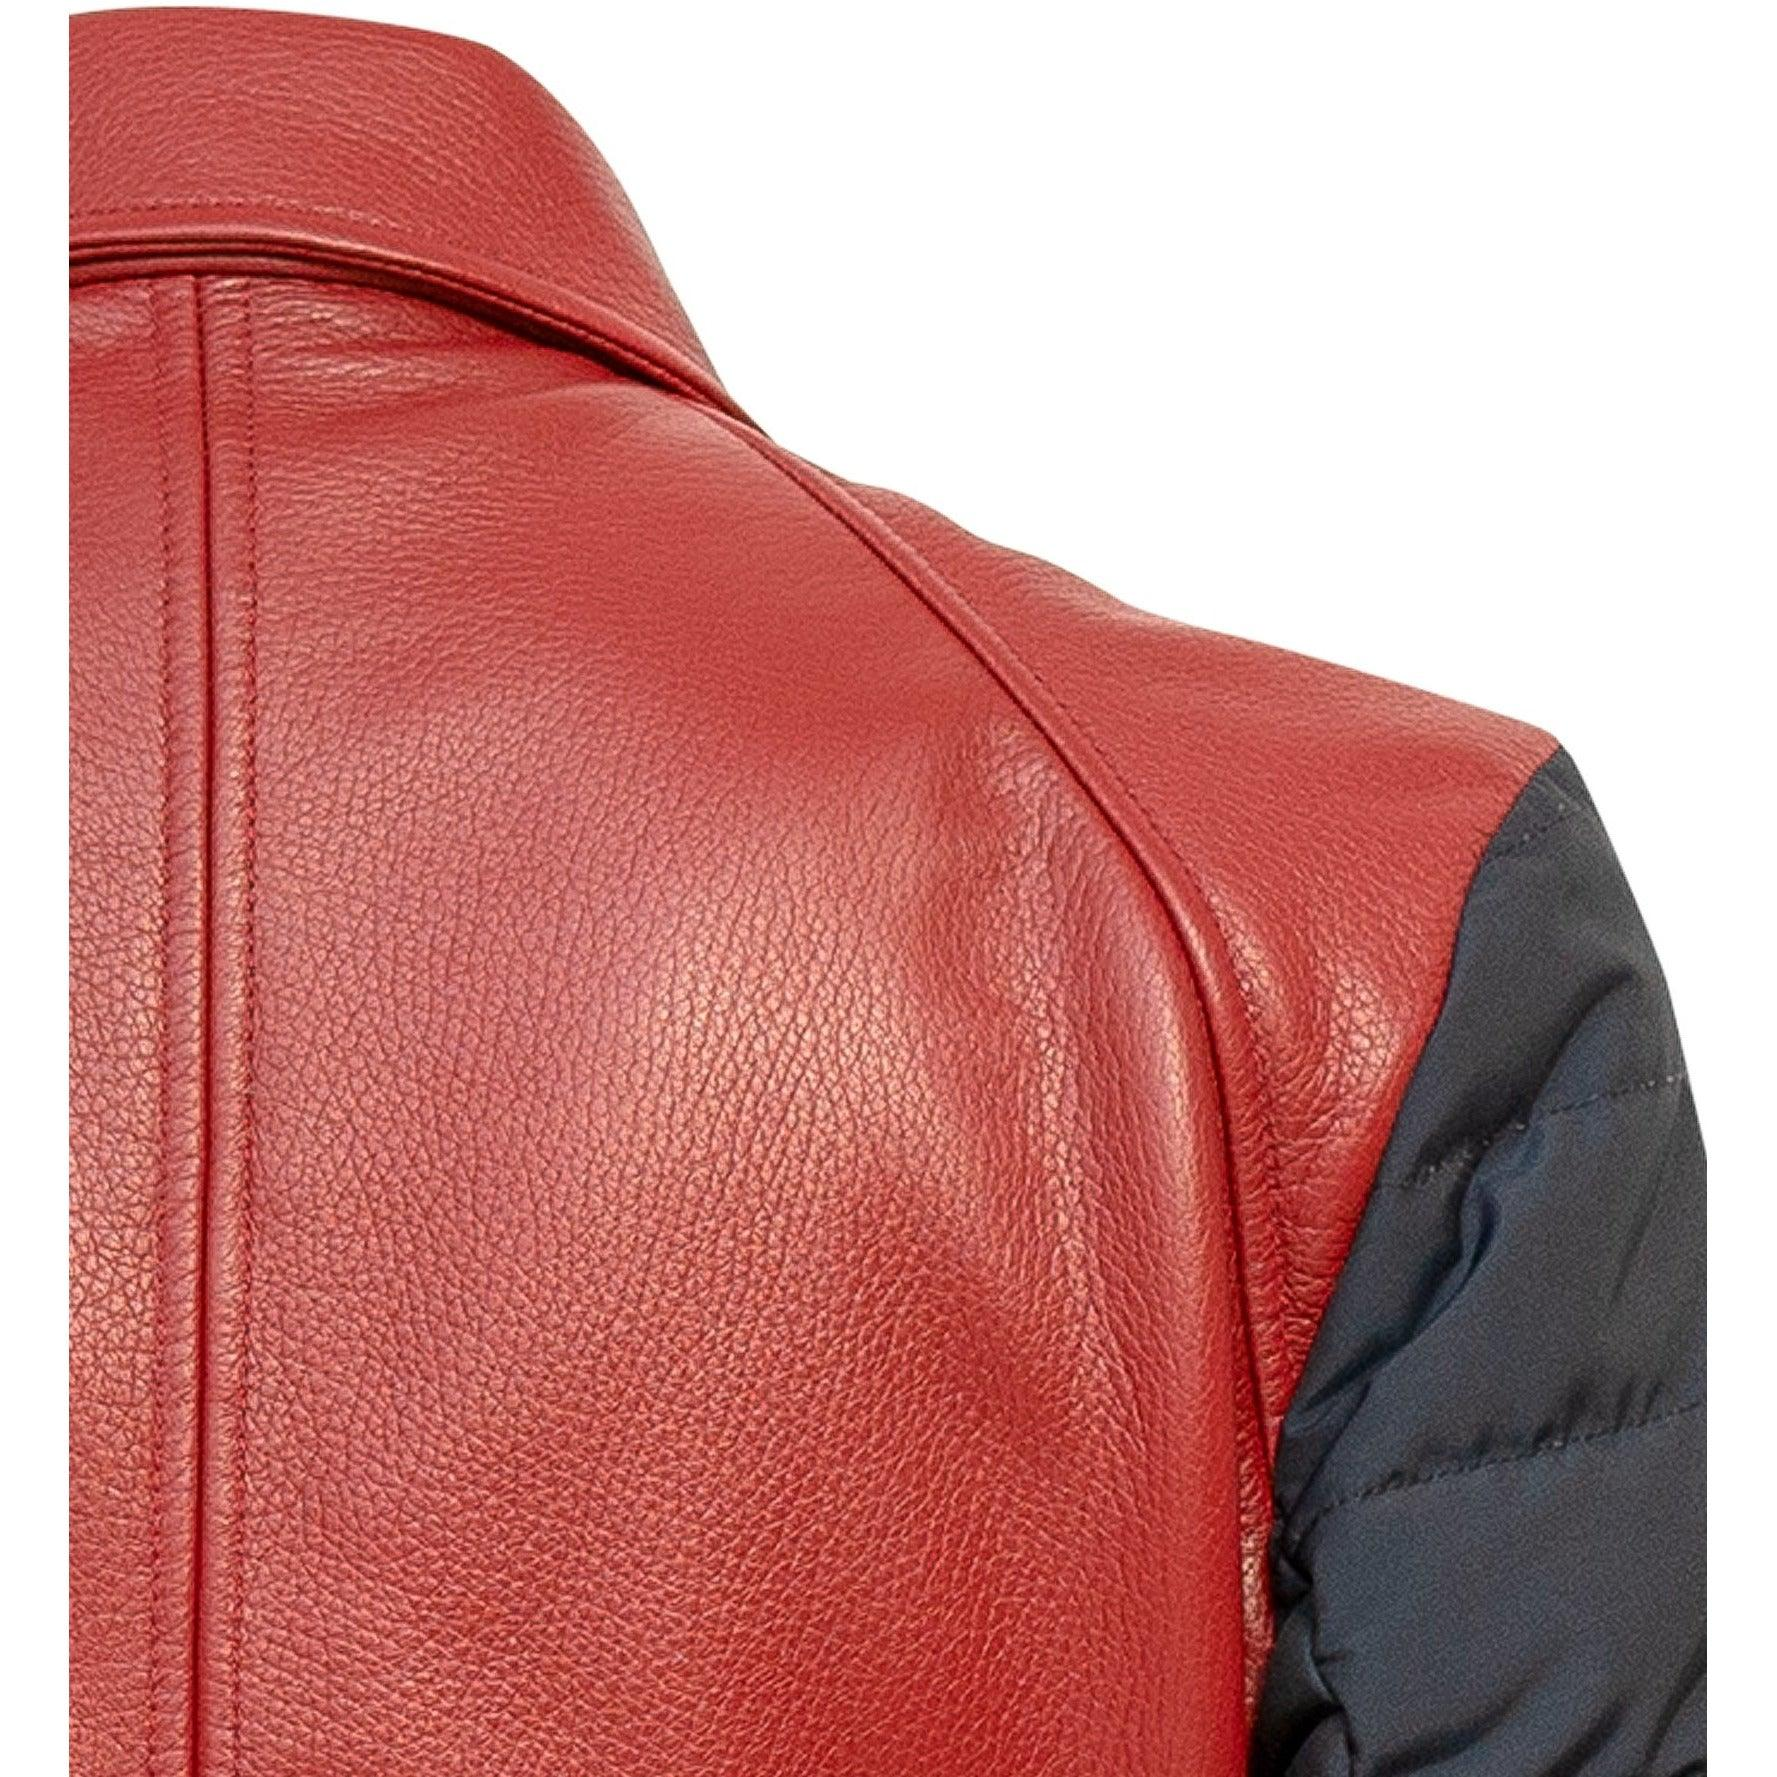 PRG001M Men Leather Jacket in Red